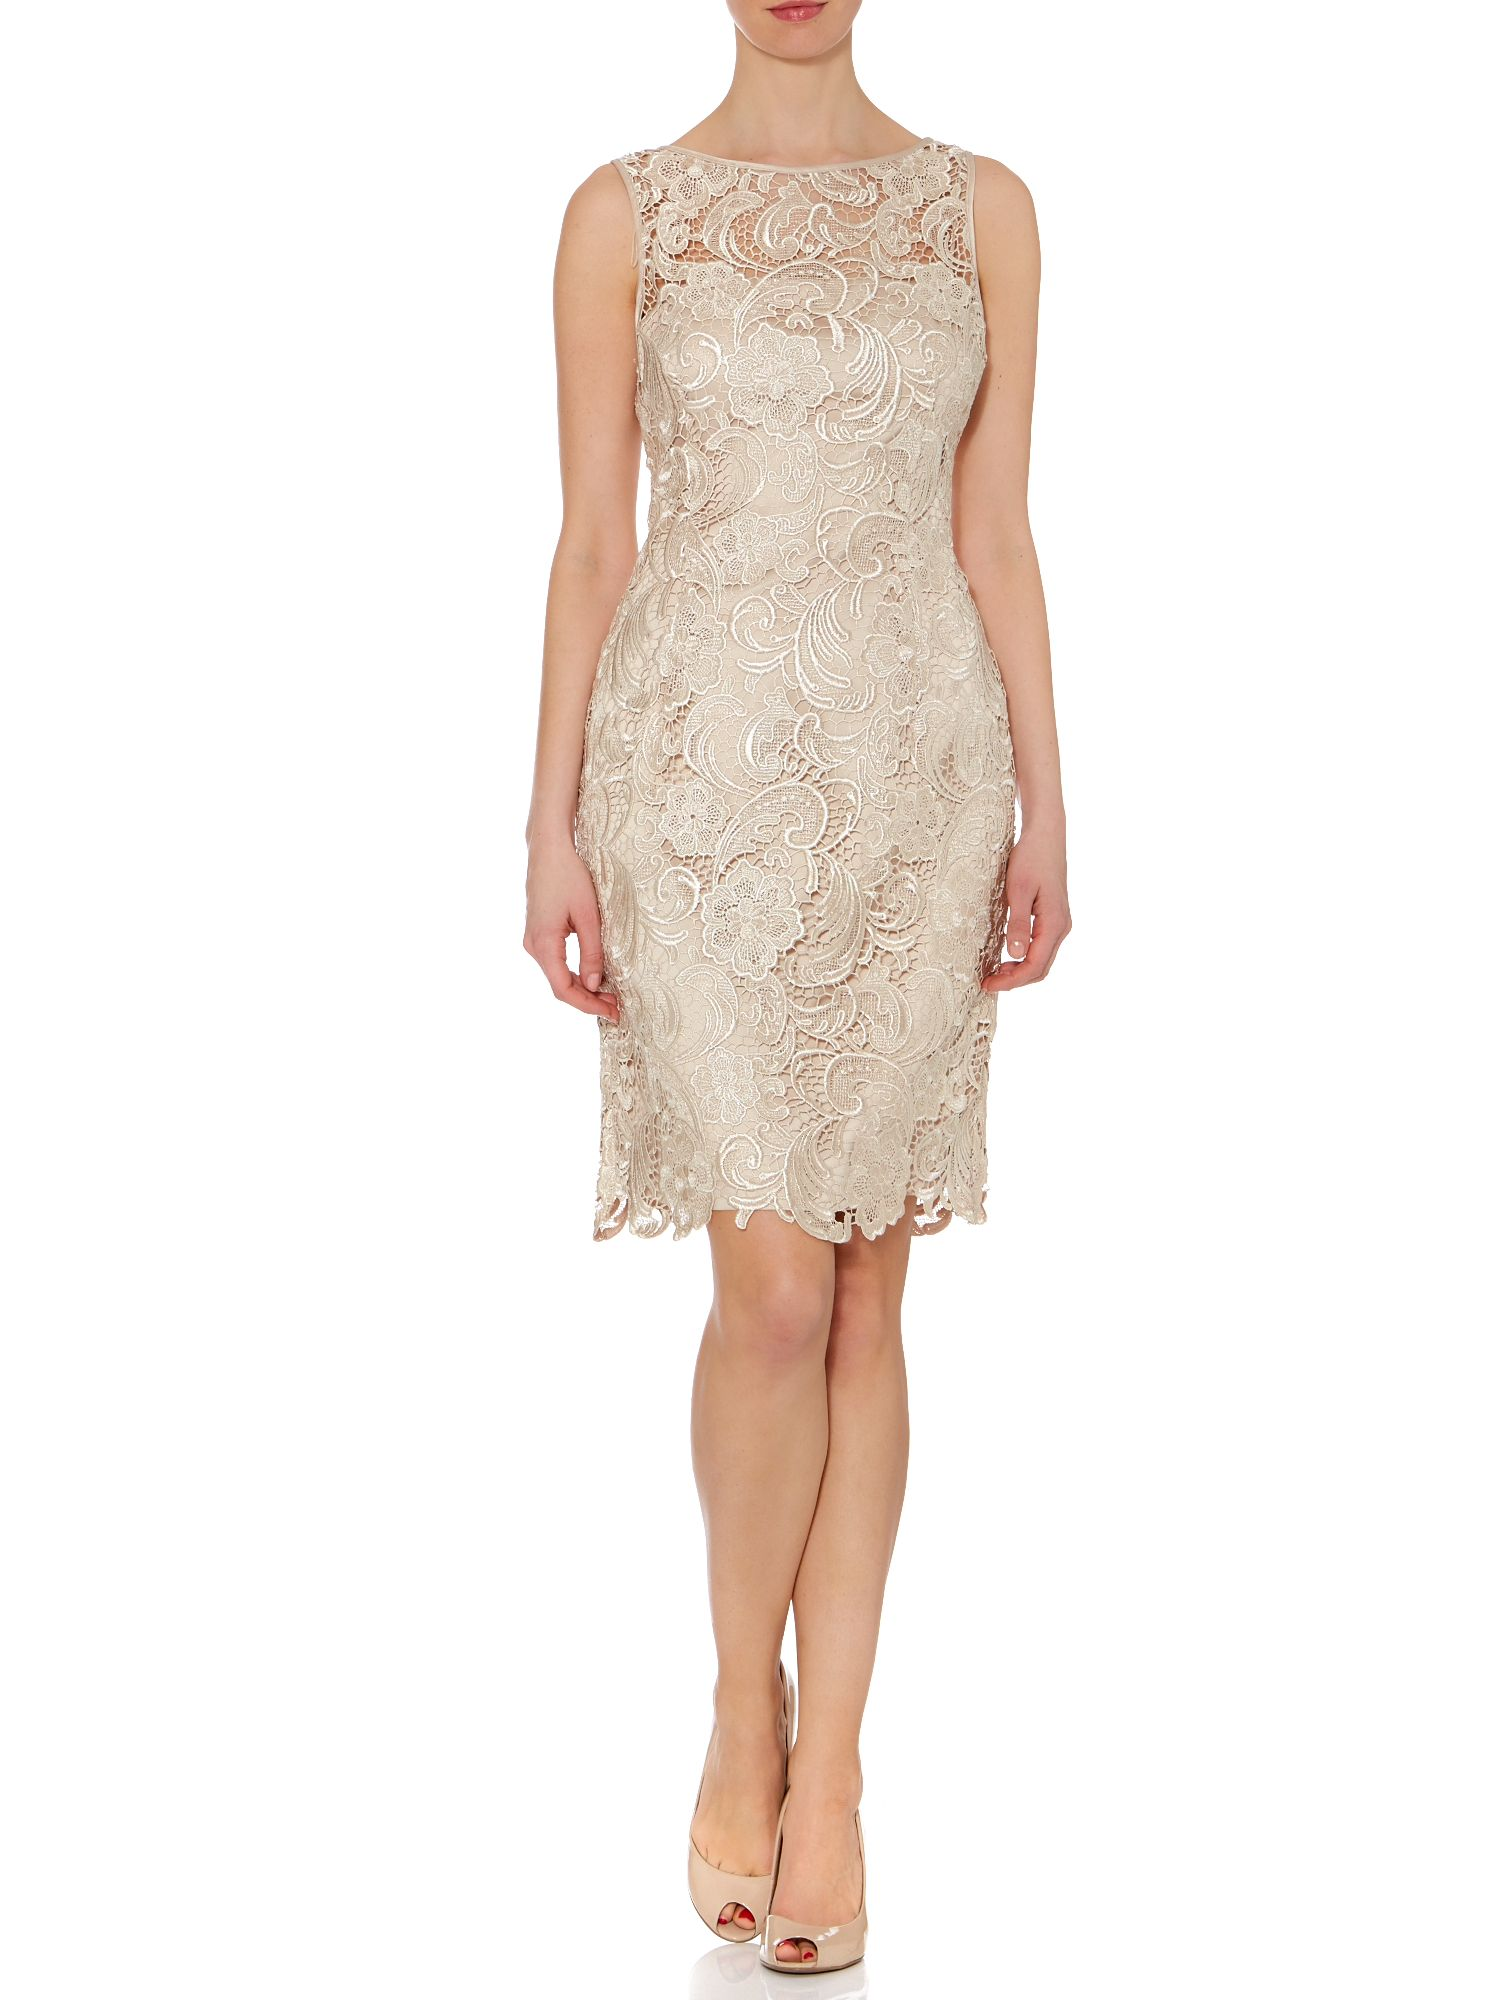 Sleeveless guipure lace shift dress